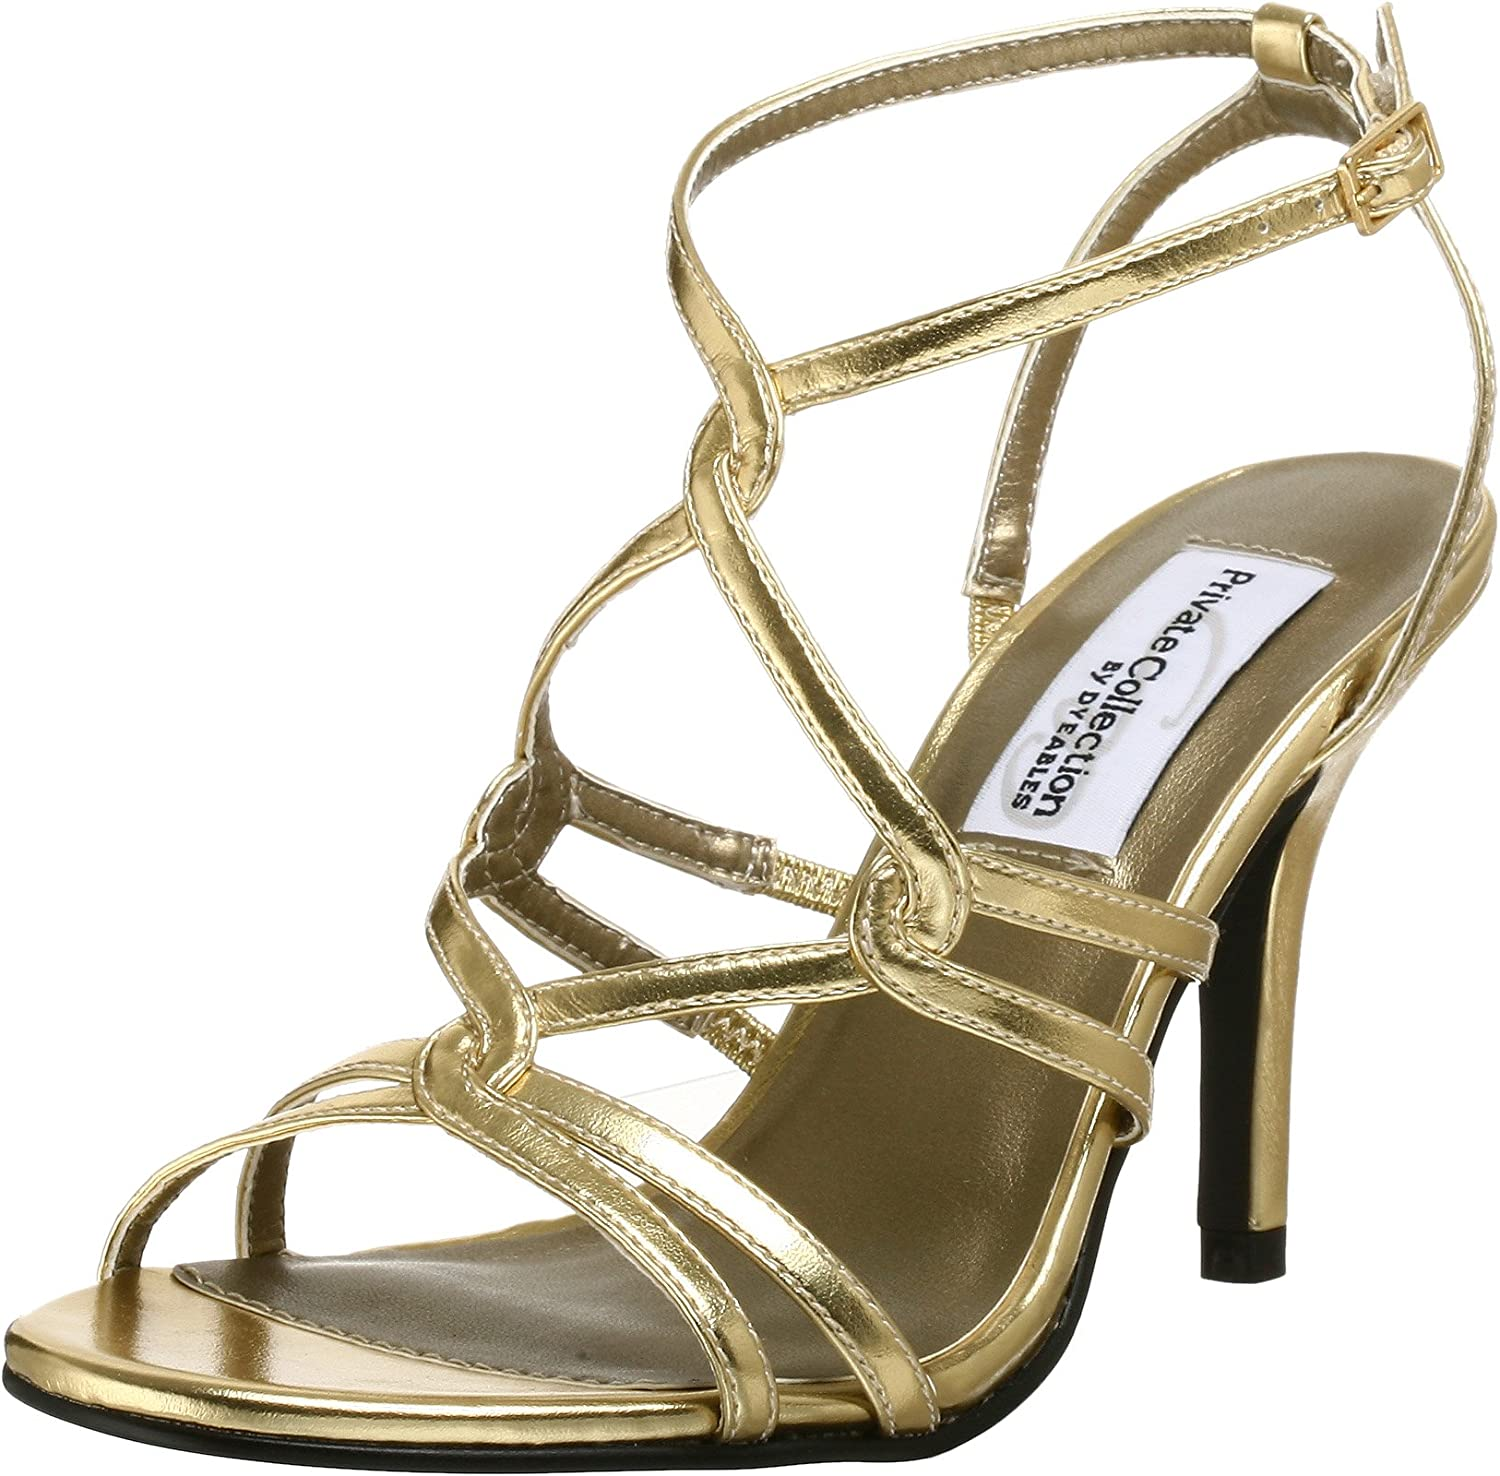 Dyeables Women's Runway Sandal gold Metallic